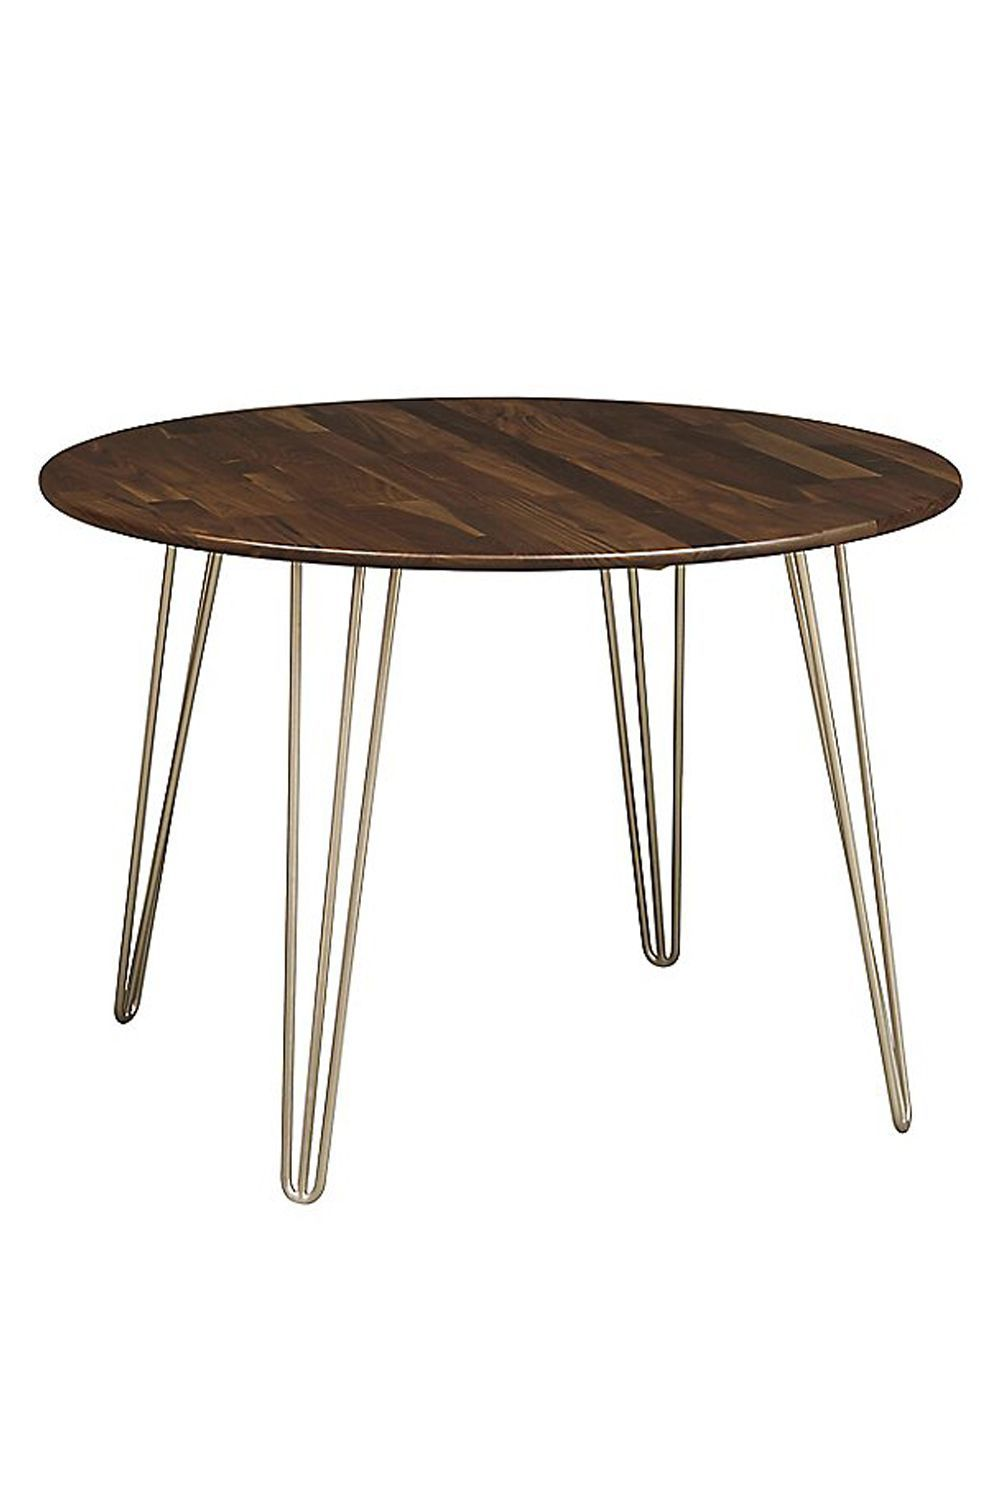 Table Kitchen Essentials Round Dining Table